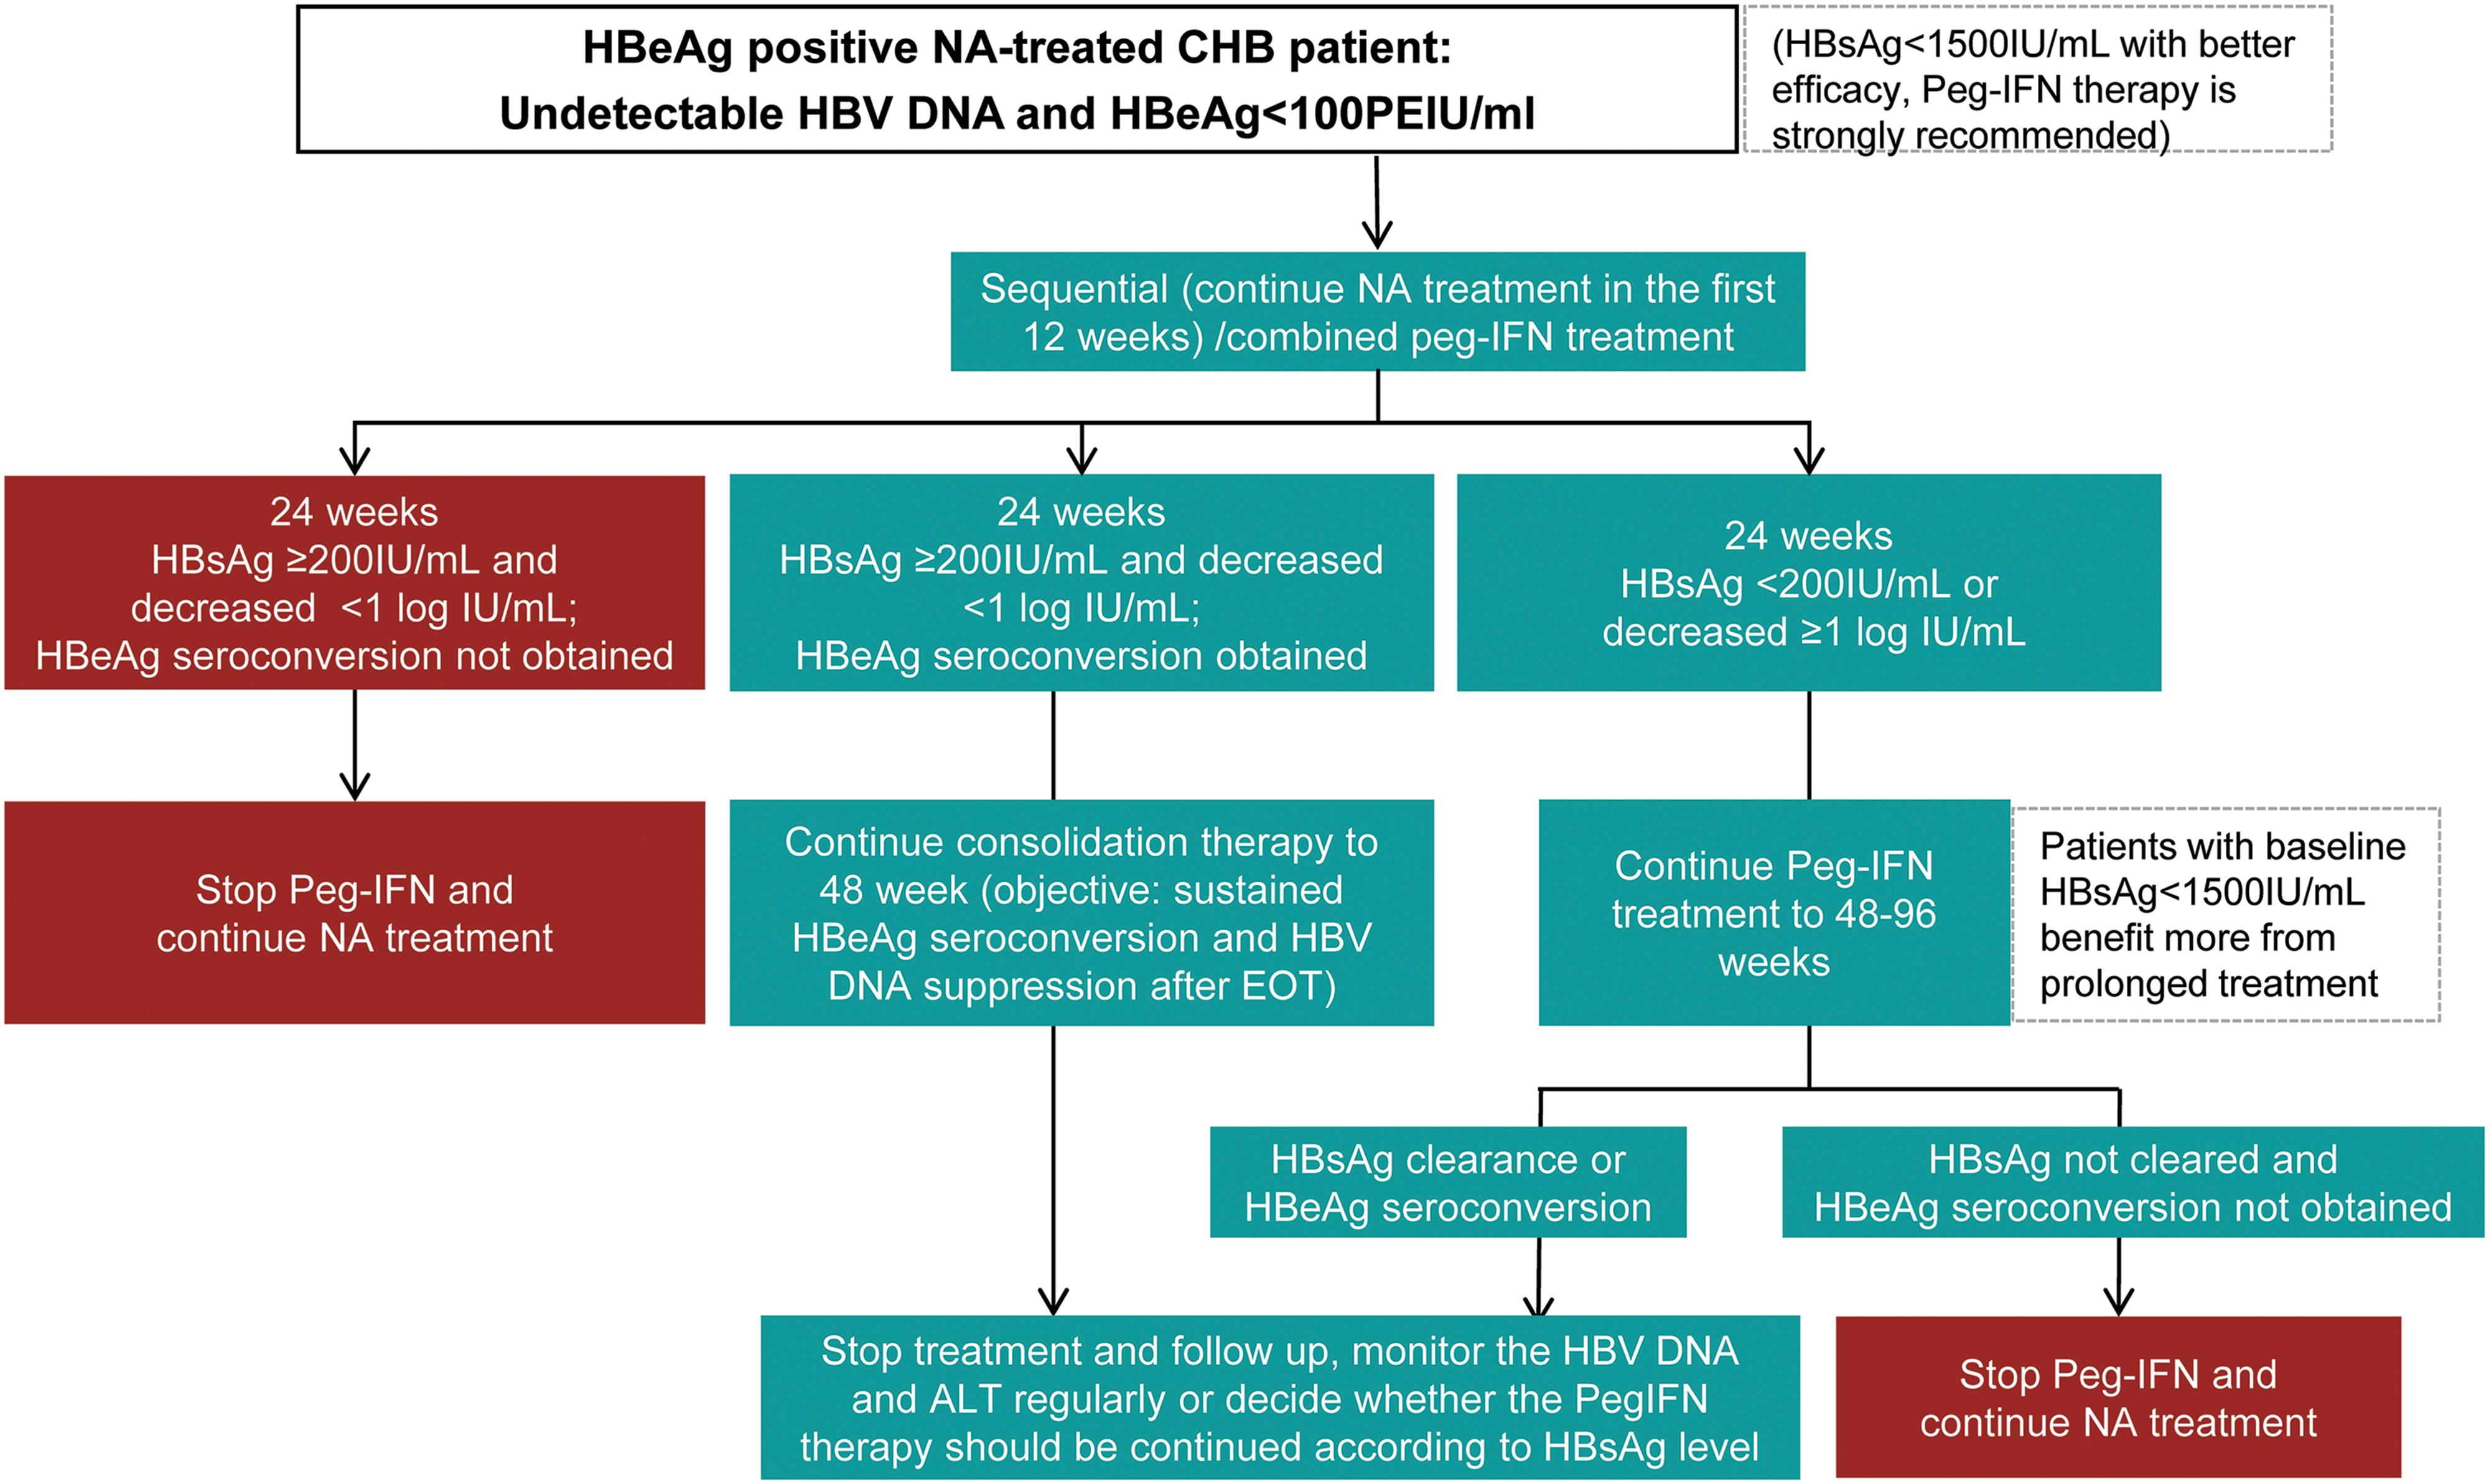 Adjustment during Peg-IFN treatment for NA-treated CHB patients.